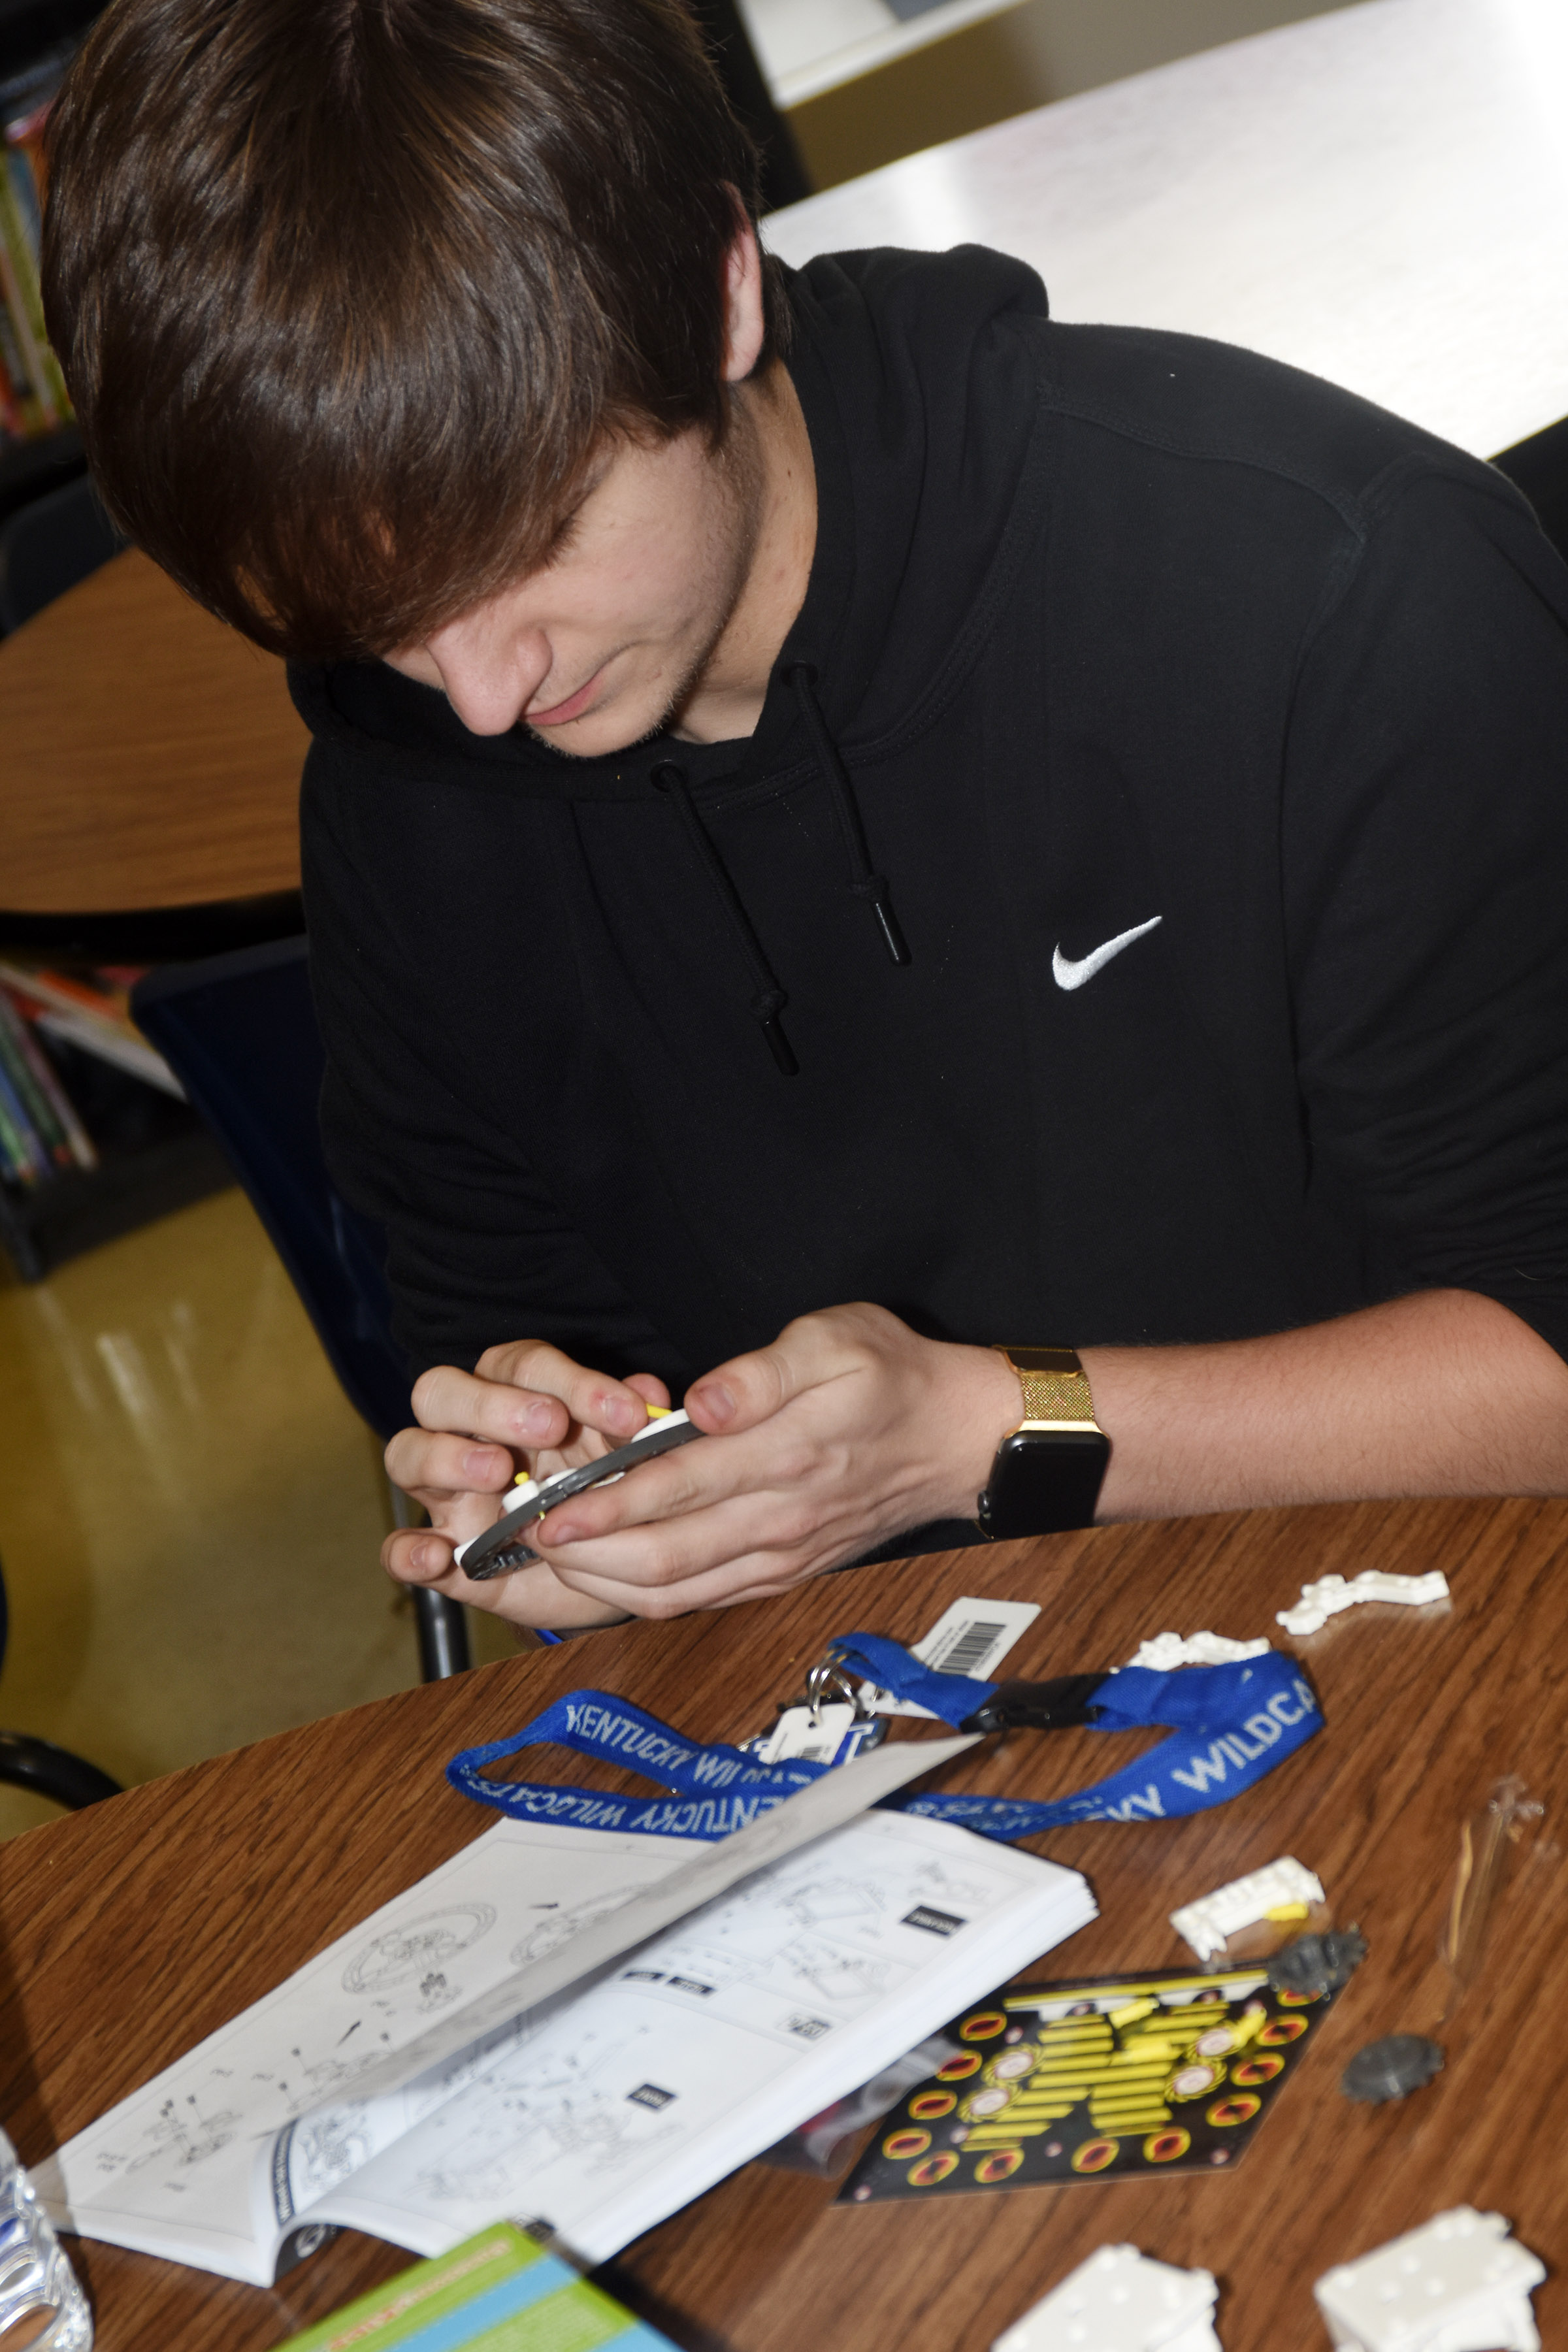 CHS junior Myles Murrell and his fellow STEM Club members build a solar vehicle robot.